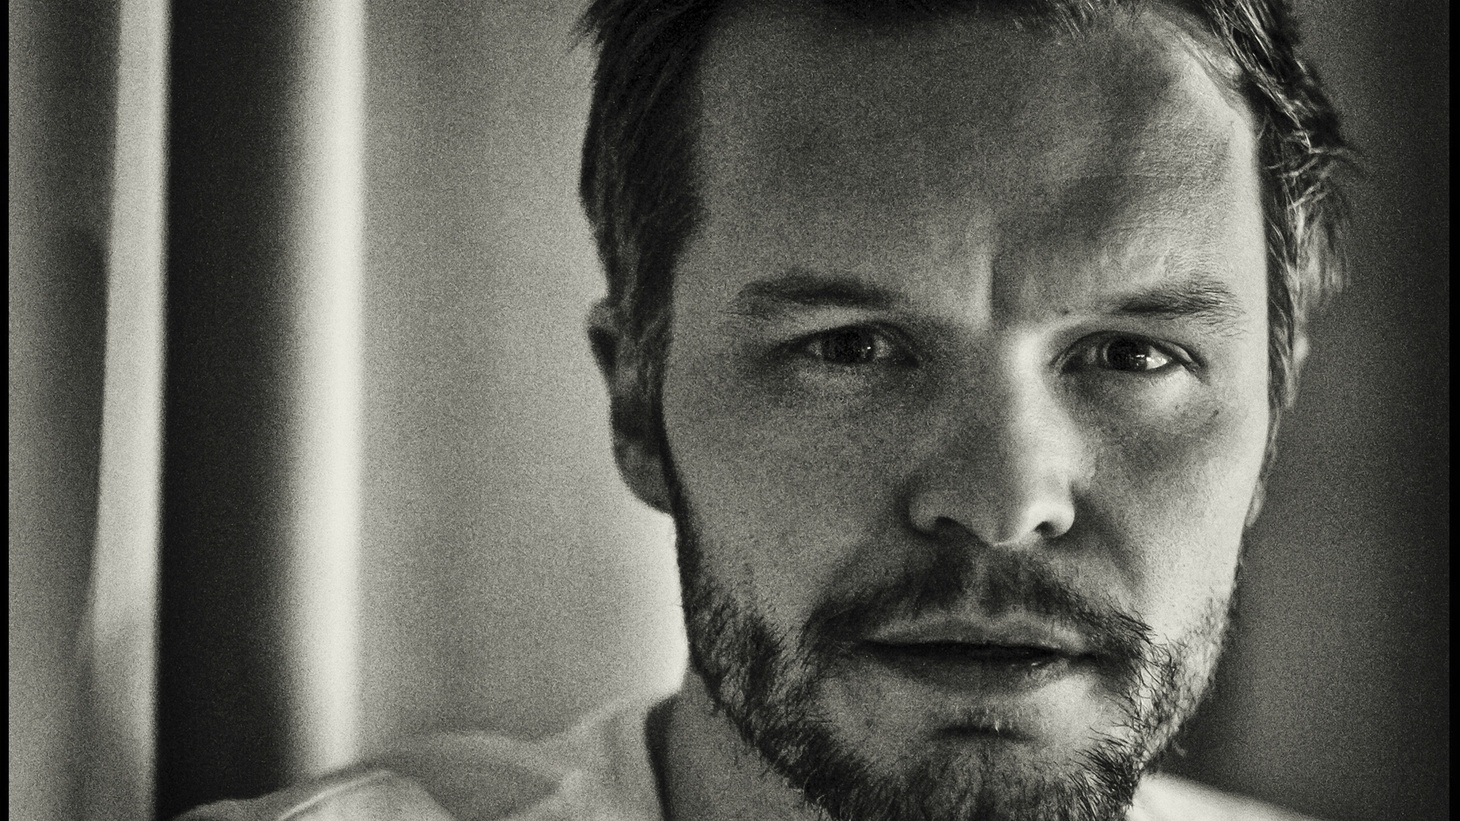 A Swedish folk singer with a voice that hearkens back to Bob Dylan's heyday will perform at UCSB's Campbell Hall this week. Kristian Matsson is better known by his stage name -- the Tallest Man on Earth.